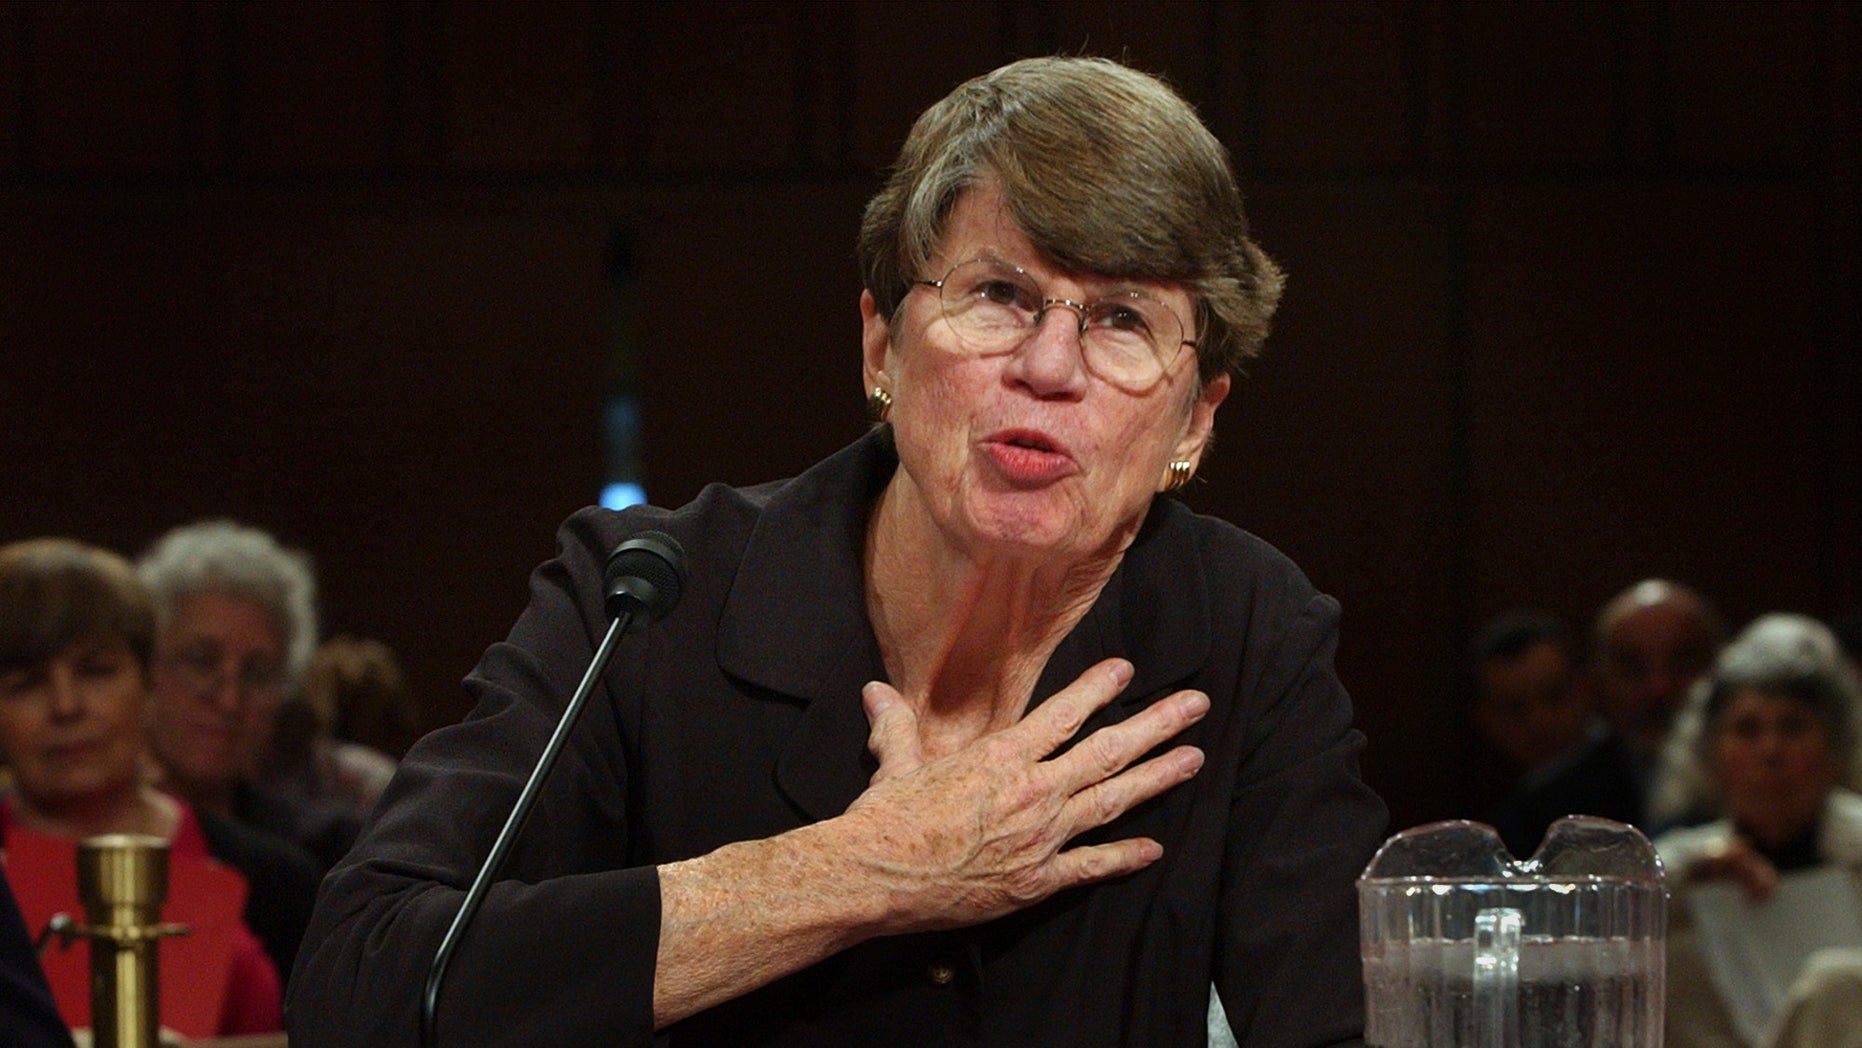 Former U.S. Attorney General Janet Reno in an April 13, 2004, file photo.